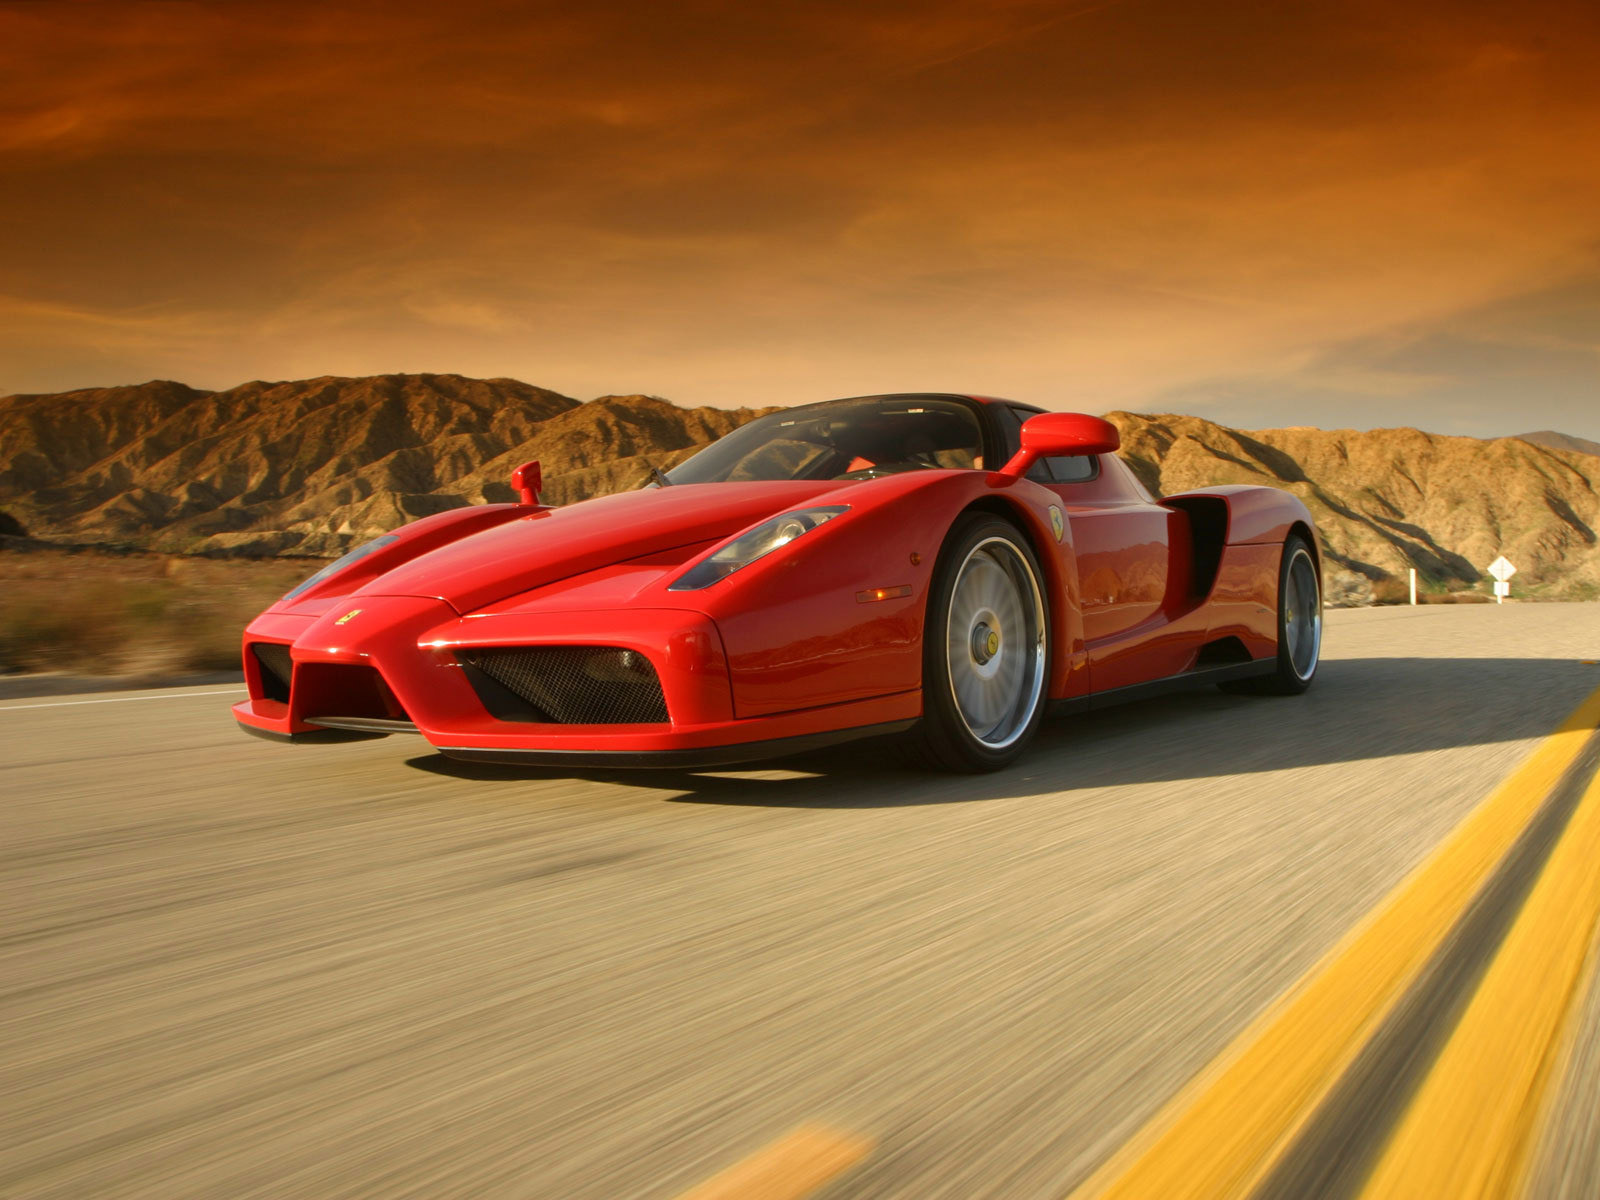 http://4.bp.blogspot.com/_7XKM5uAPfD8/THgaY5uczcI/AAAAAAAAAGc/I6Nd7dBiWmA/s1600/west-coast-customs_ferrari-enzo_r2.jpg